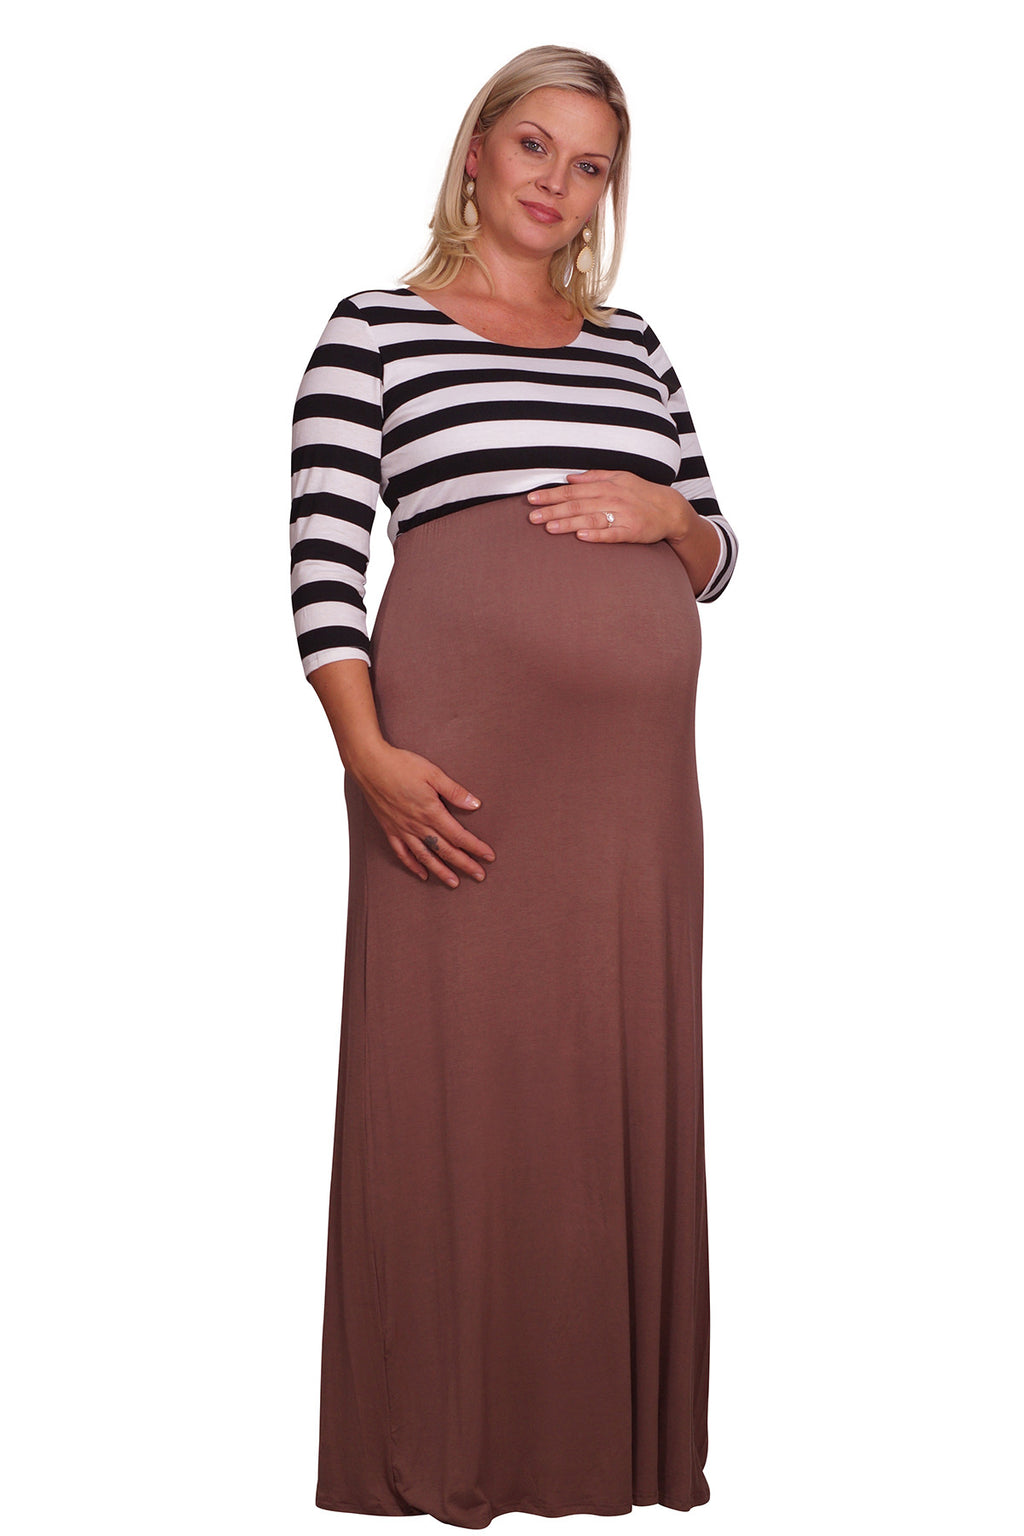 Striped and Solid Plus Maternity Maxi - Mommylicious